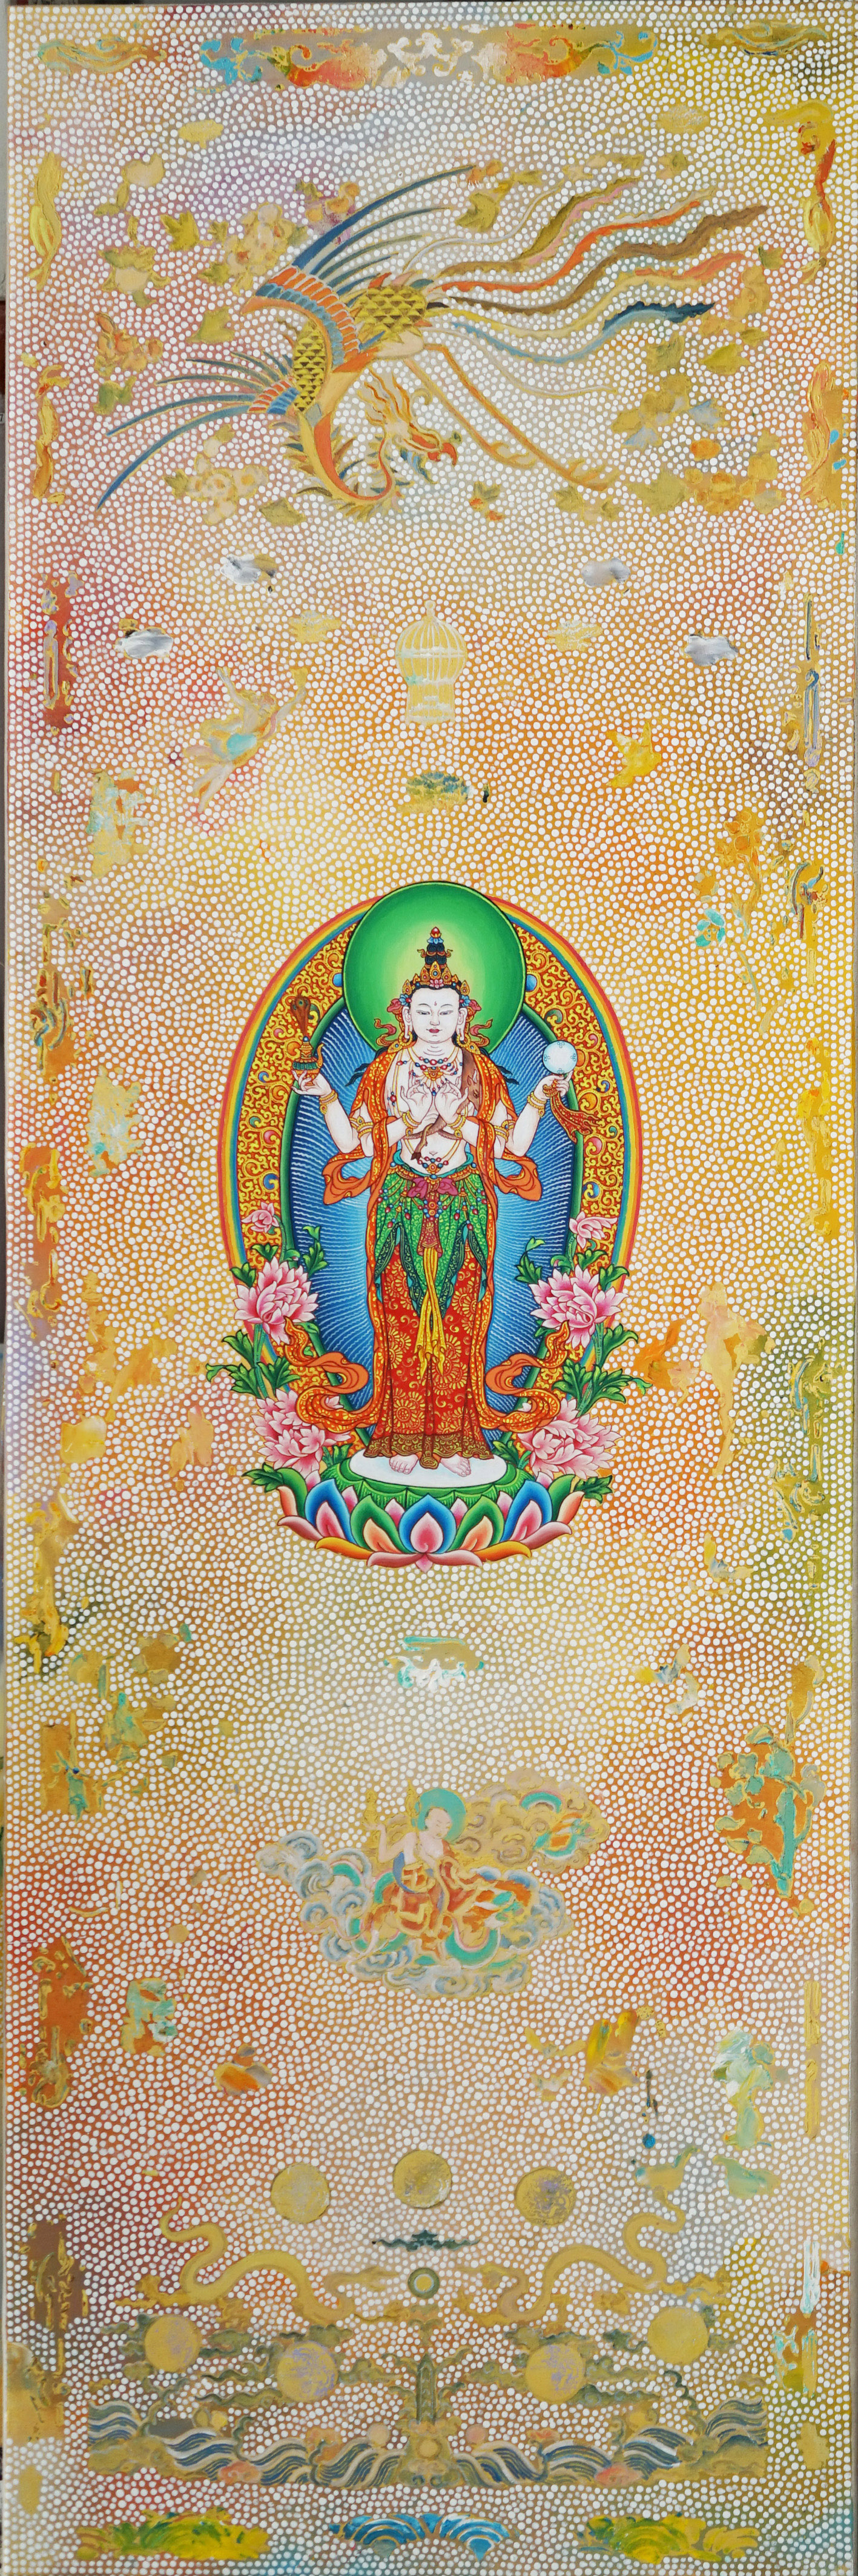 Dolma 1. 2013-18 with Karma Phuntsok. Acrylic on linen. 183 x 60 cm. $7,000